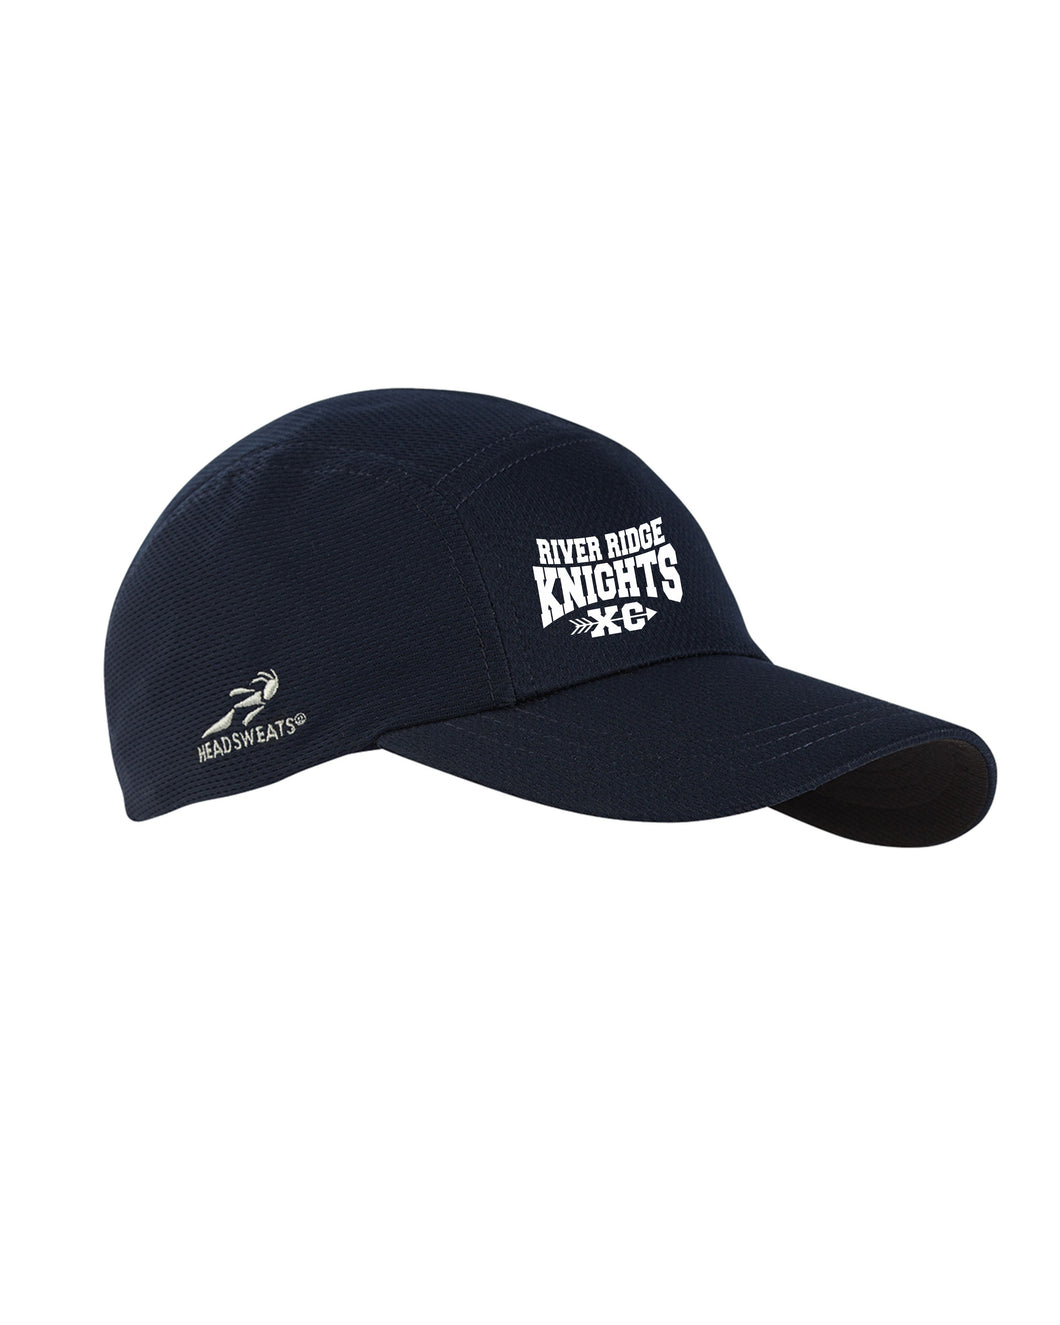 Item RR-XC-906-1 - Headsweats Adult Race Hat - River Ridge KNIGHTS XC Logo